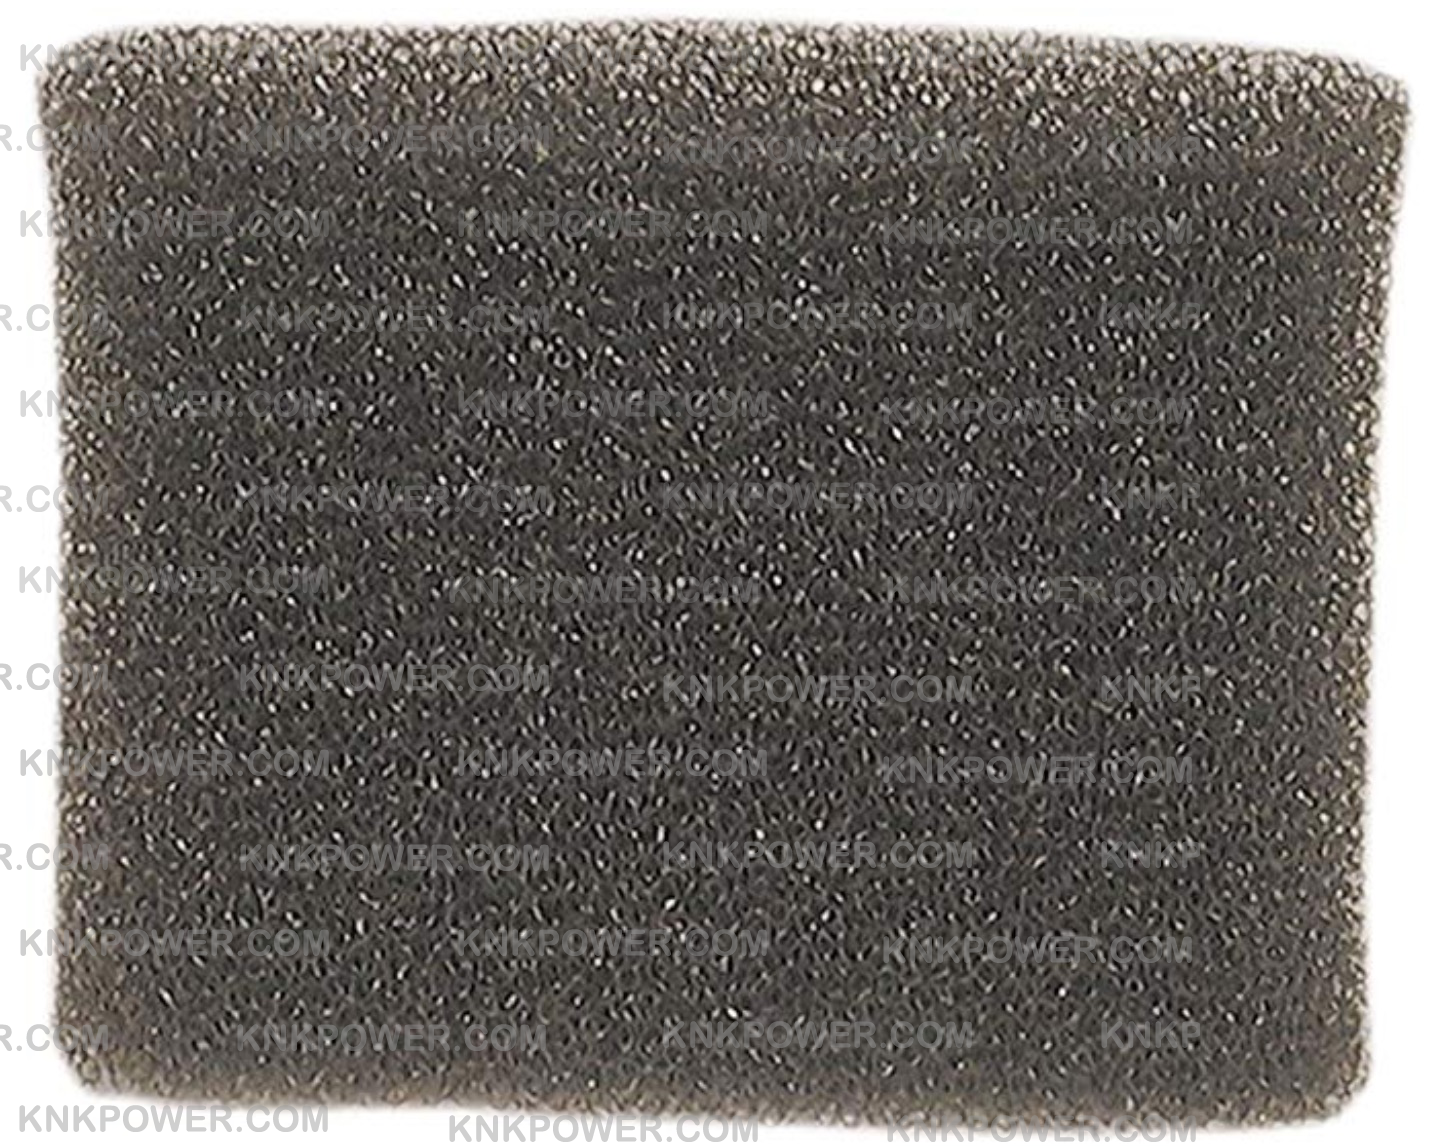 17-4174 AIR FILTER TECUMSEH 35435 TECUMSEH ECV100 LEV90 LEV100 LEV115 OVRM60 TC300 TVS75 AND TVS90